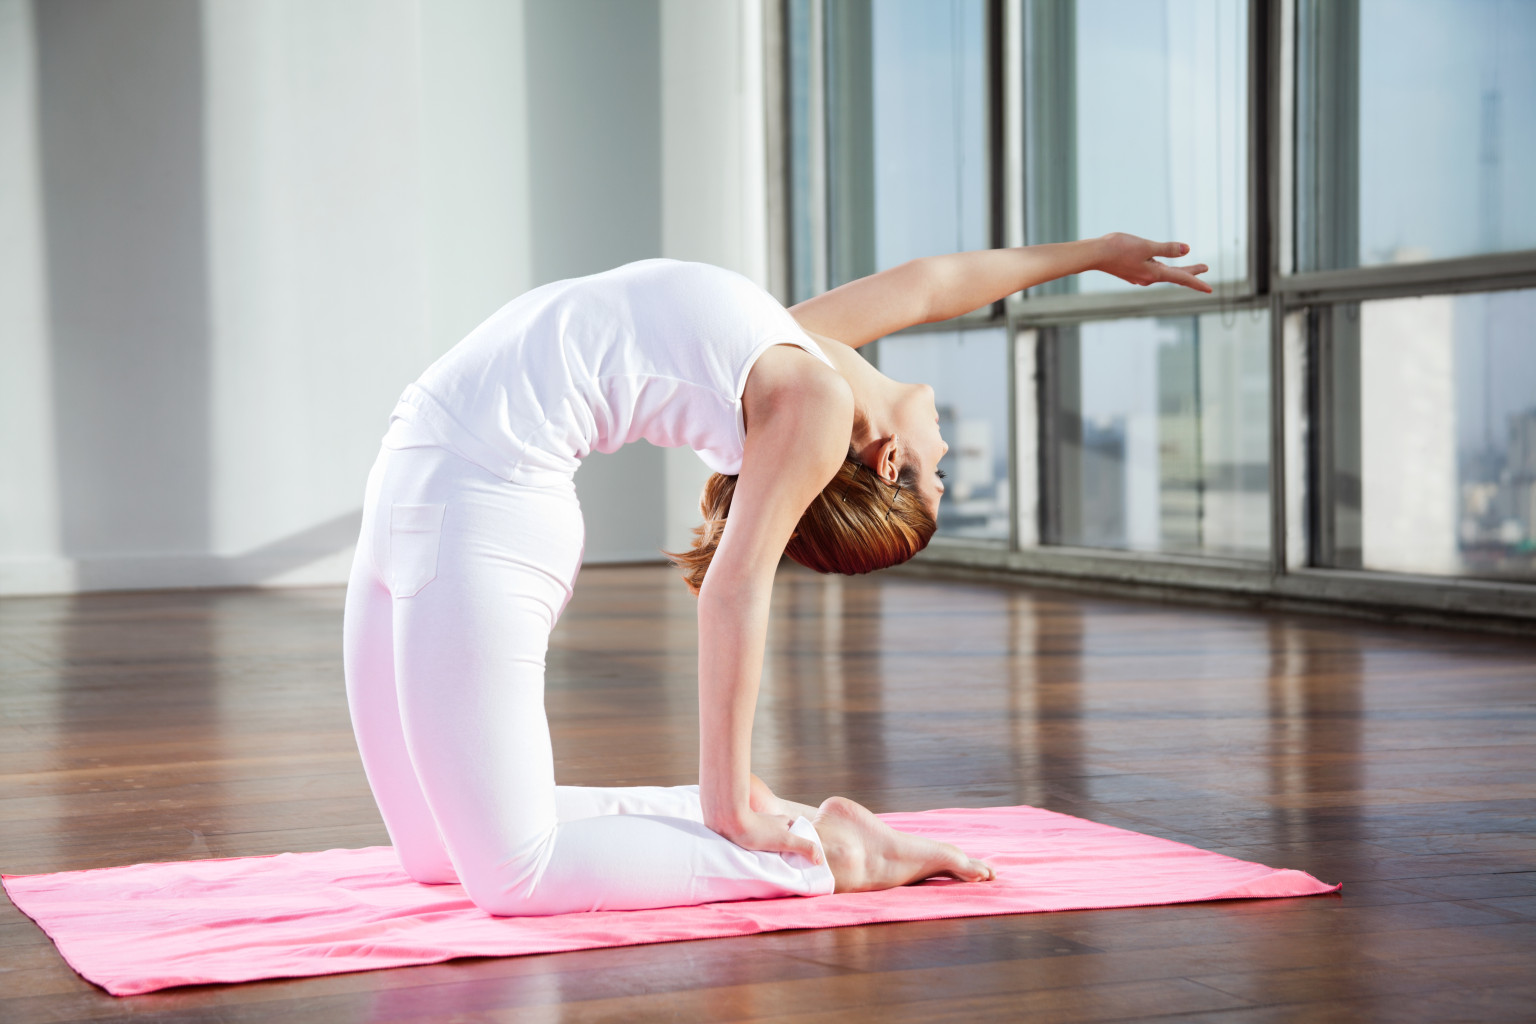 Yoga For Energy 10 Uplifting Poses To Fight Fatigue PHOTOS